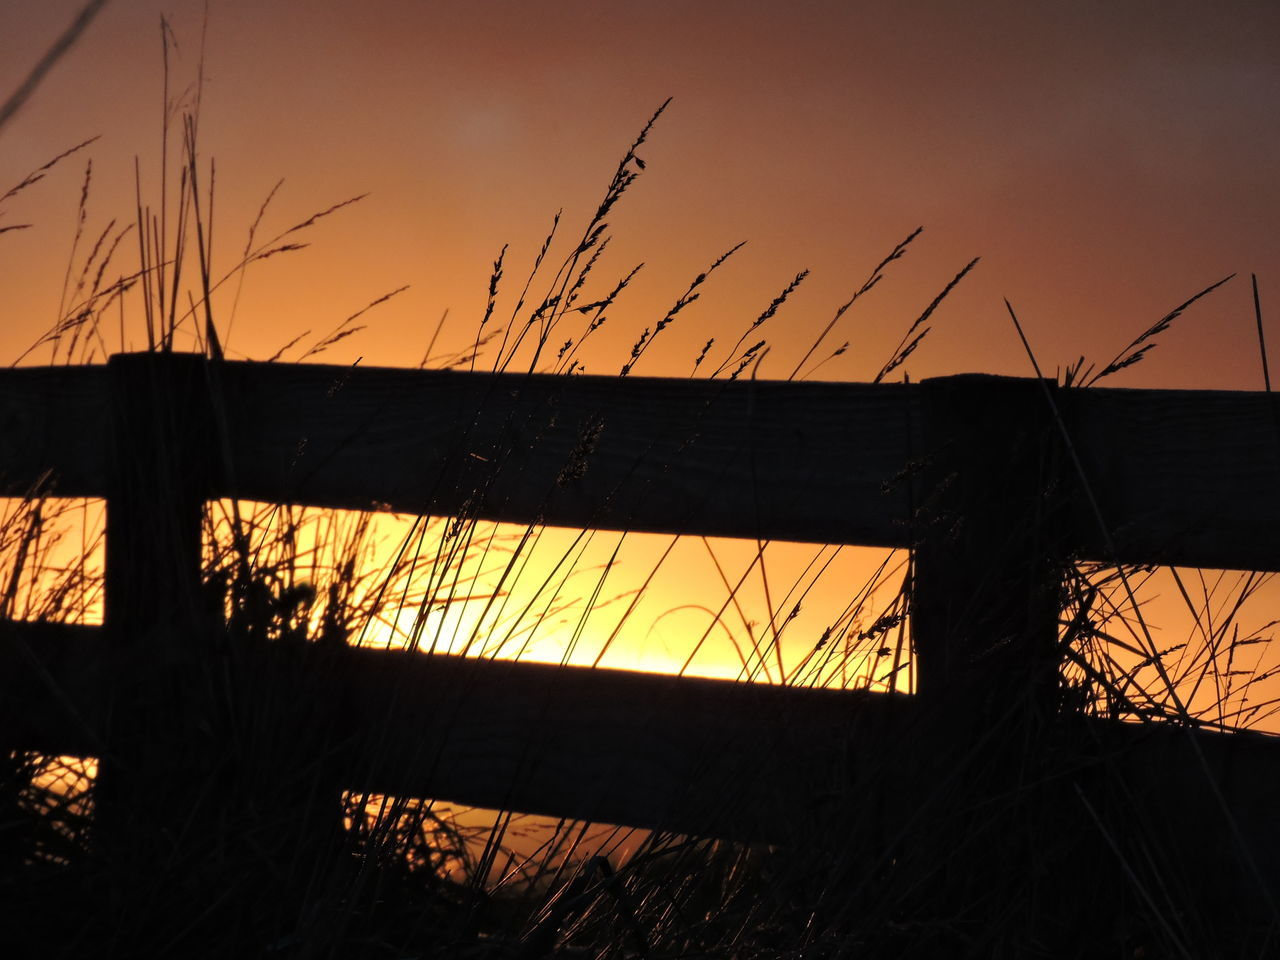 Beauty In Nature Beauty In Ordinary Things Grass Growing Out Of Wooden Slats Nature Orange Color Outdoors Rural Scenes Sky Sunrise_Collection